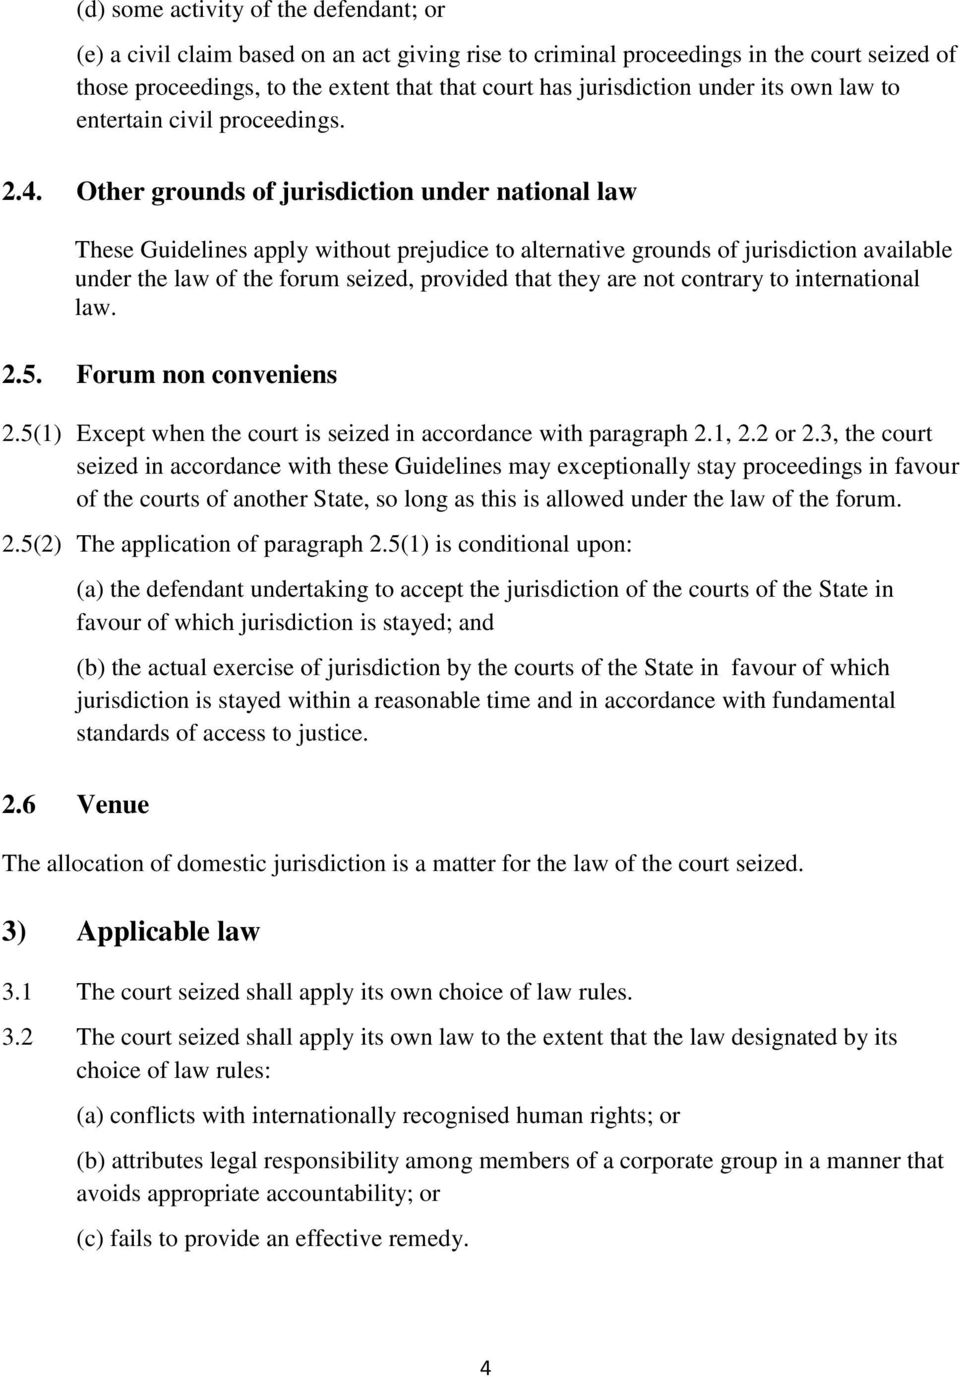 Other grounds of jurisdiction under national law These Guidelines apply without prejudice to alternative grounds of jurisdiction available under the law of the forum seized, provided that they are